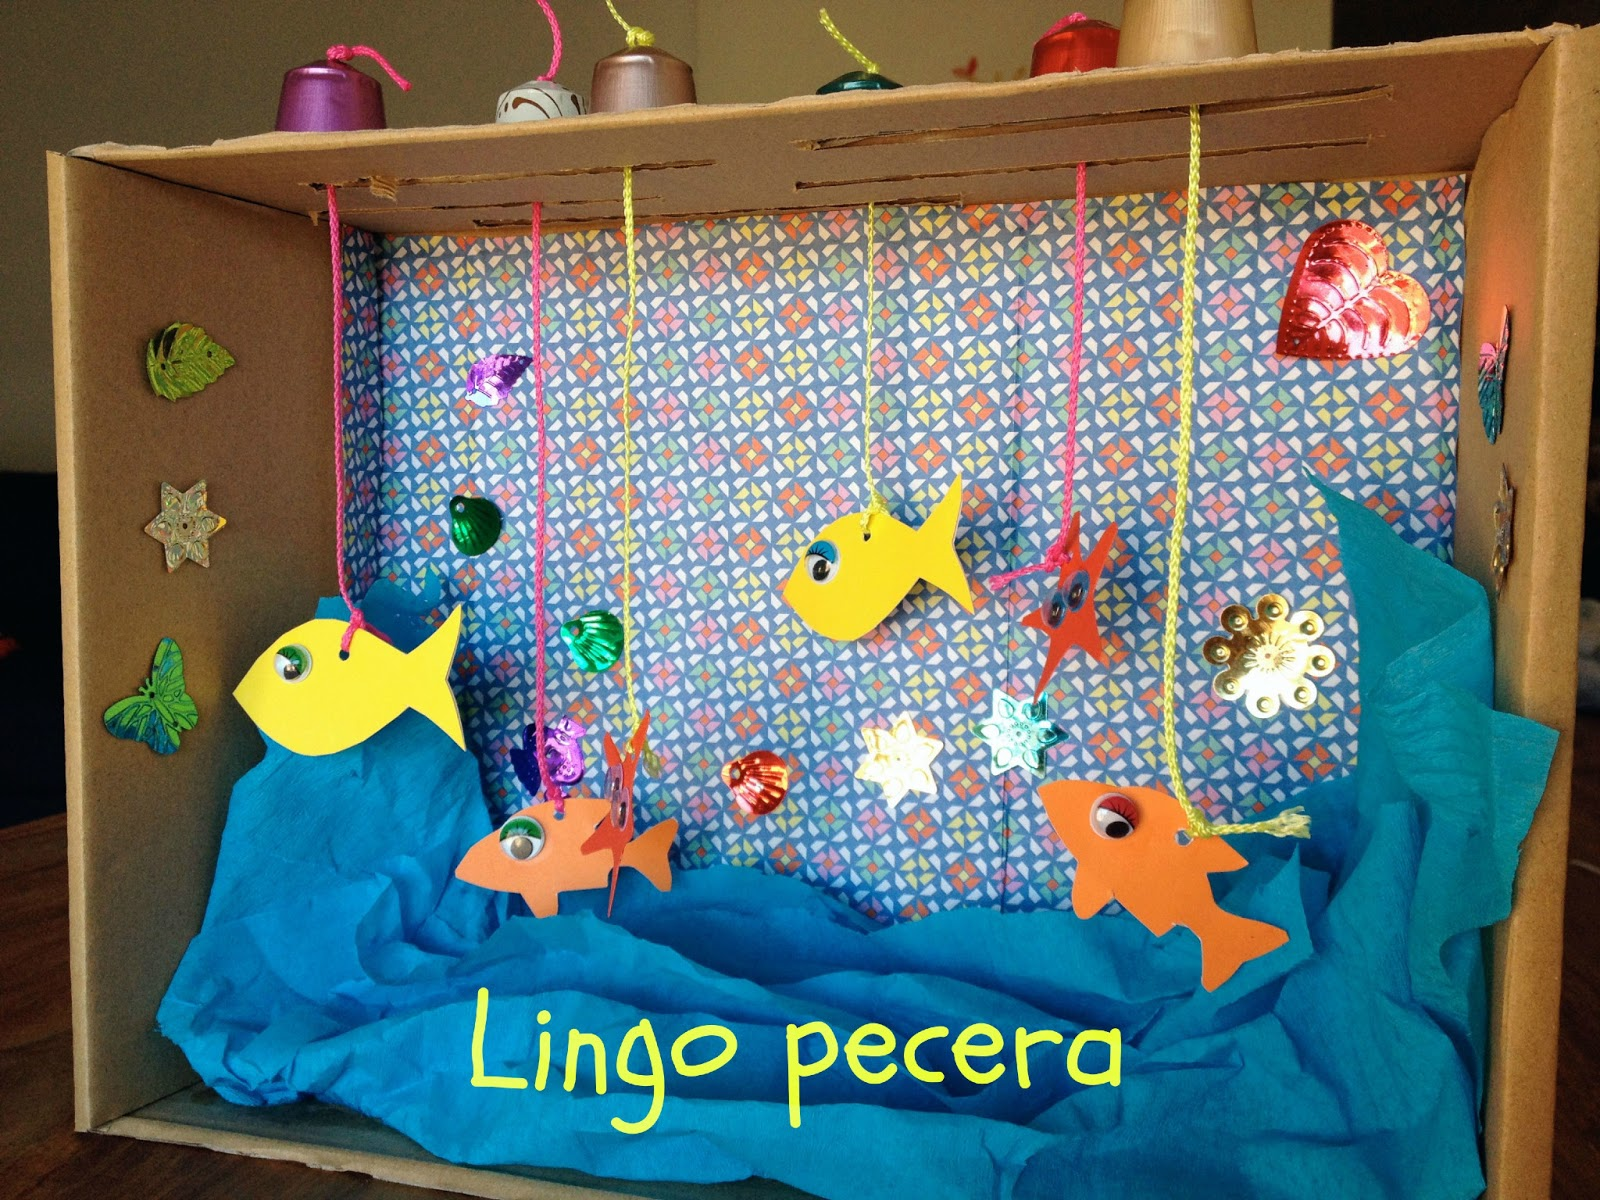 Lingosworld lingo tutorial pecera reciclada for Caja de colores jardin infantil